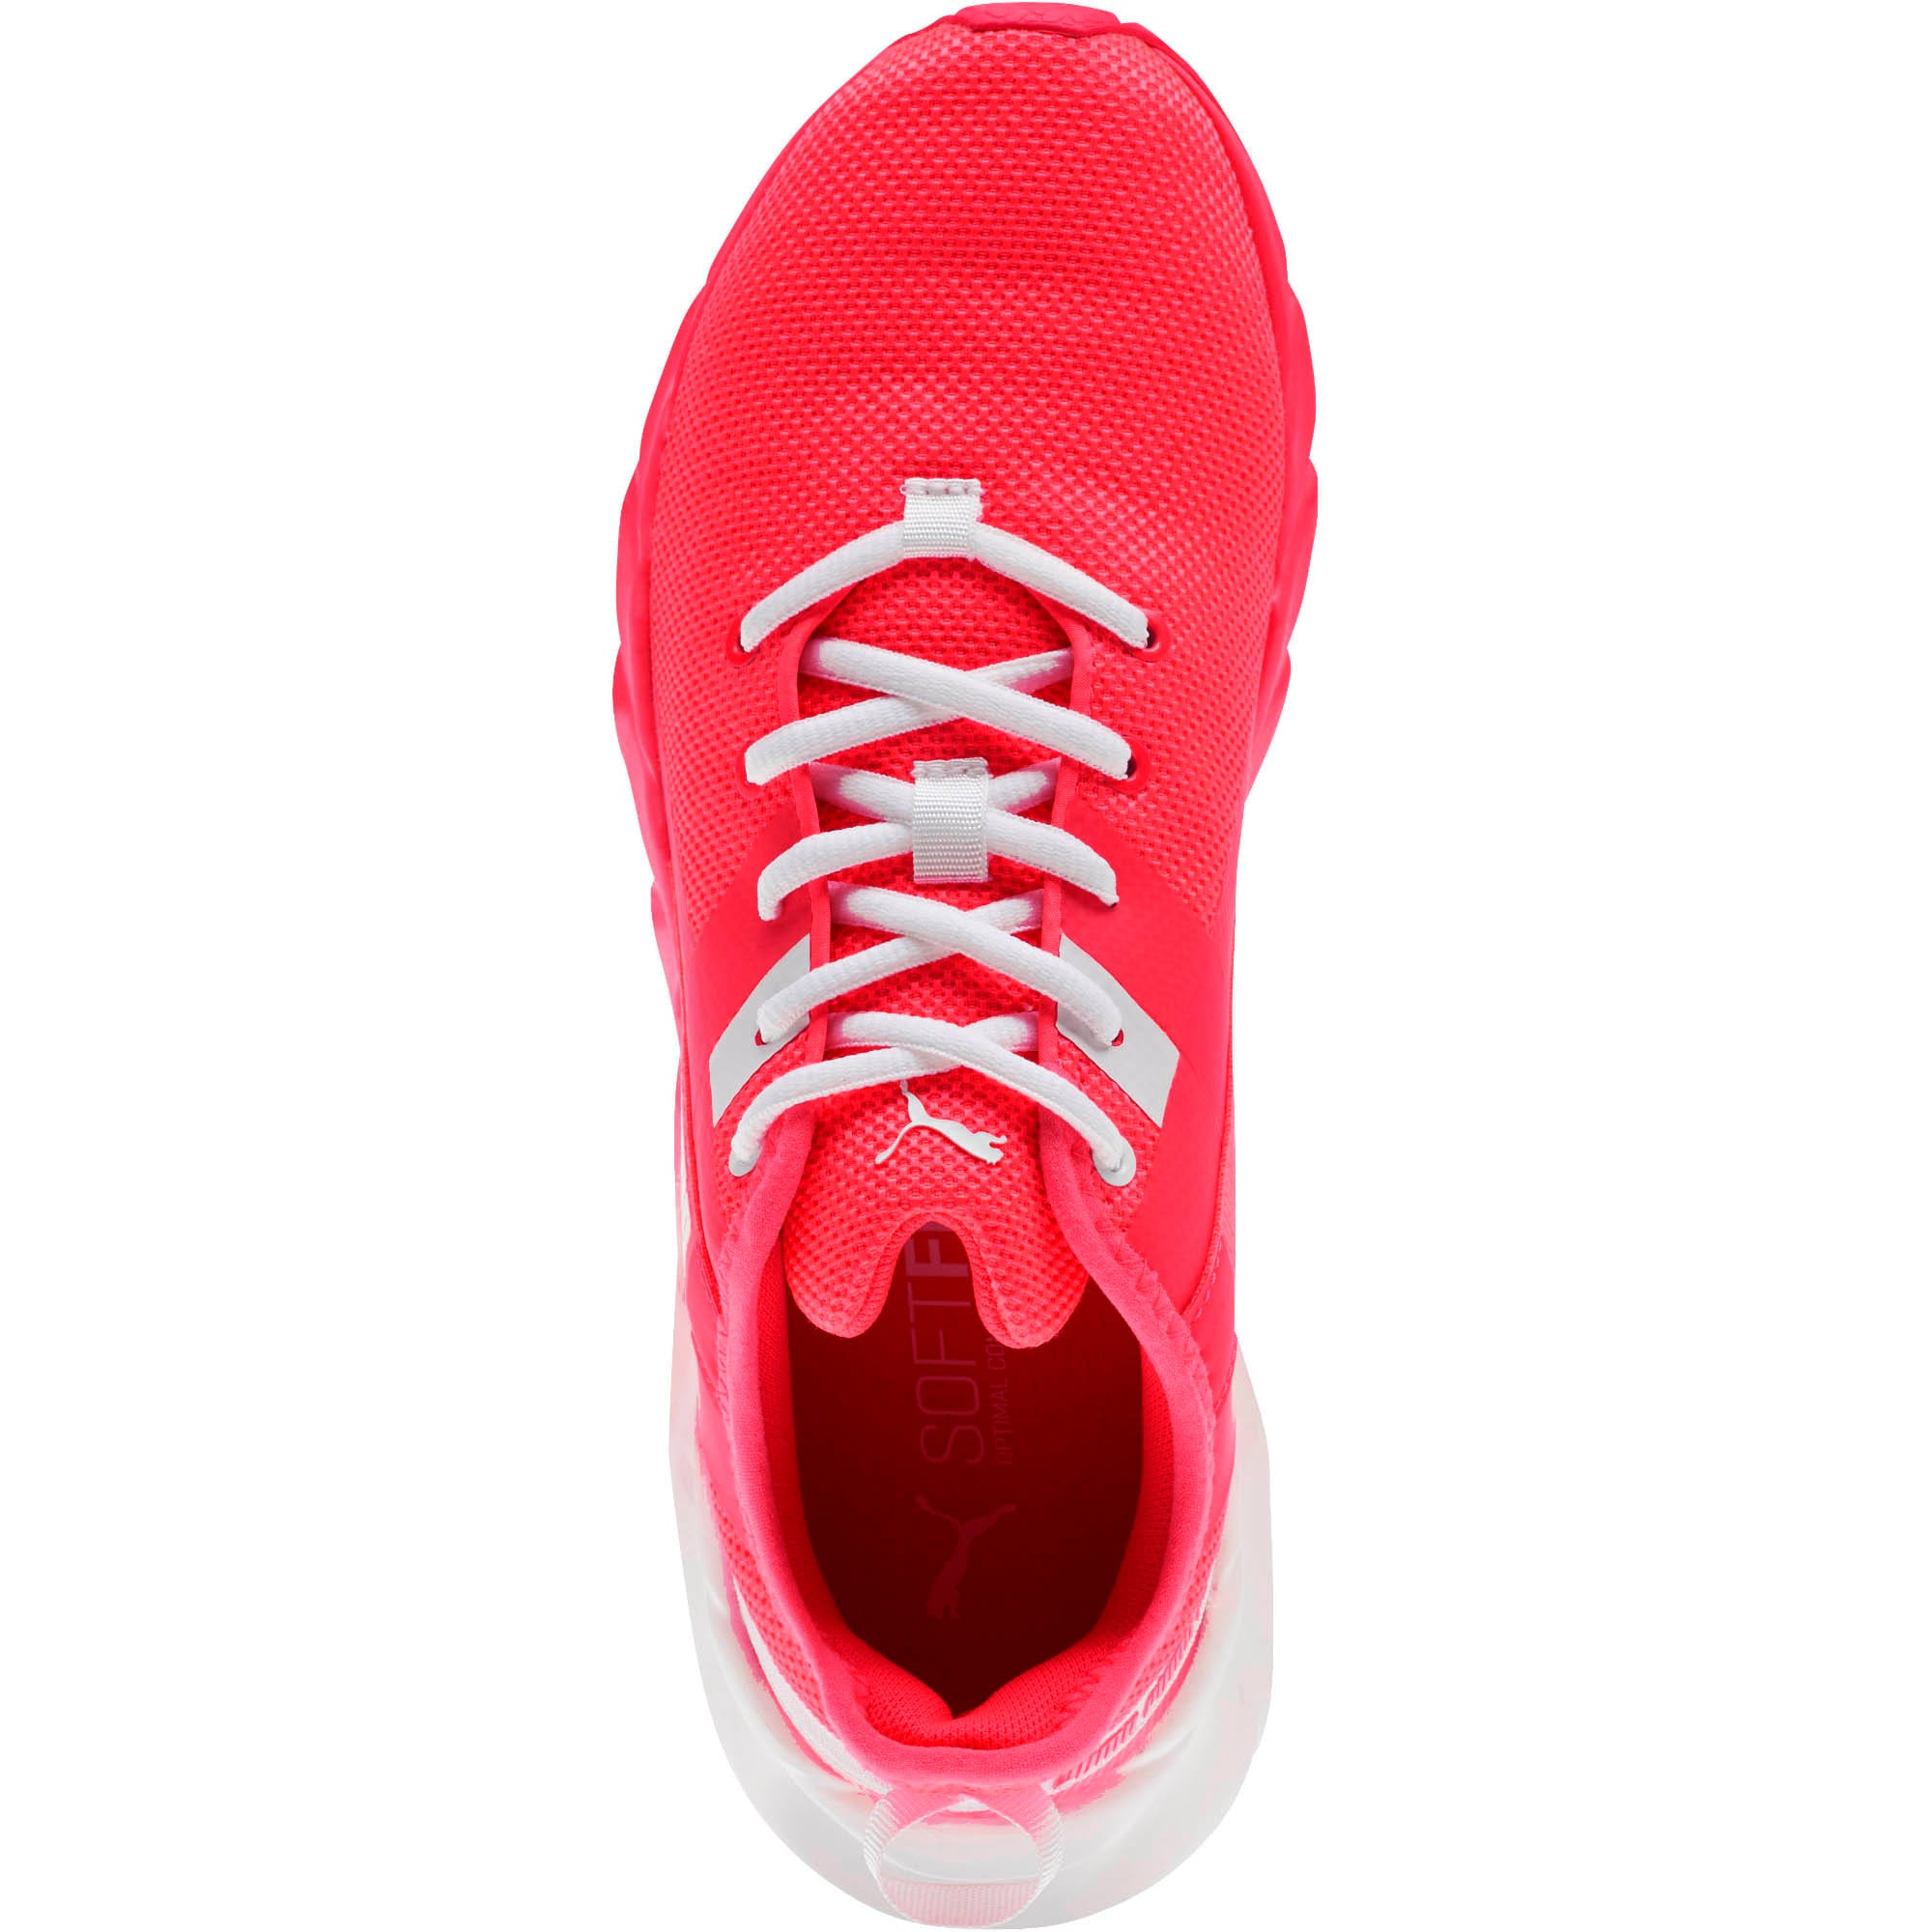 Thumbnail 5 of Weave XT Fade Women's Training Shoes, Pink Alert-Puma White, medium